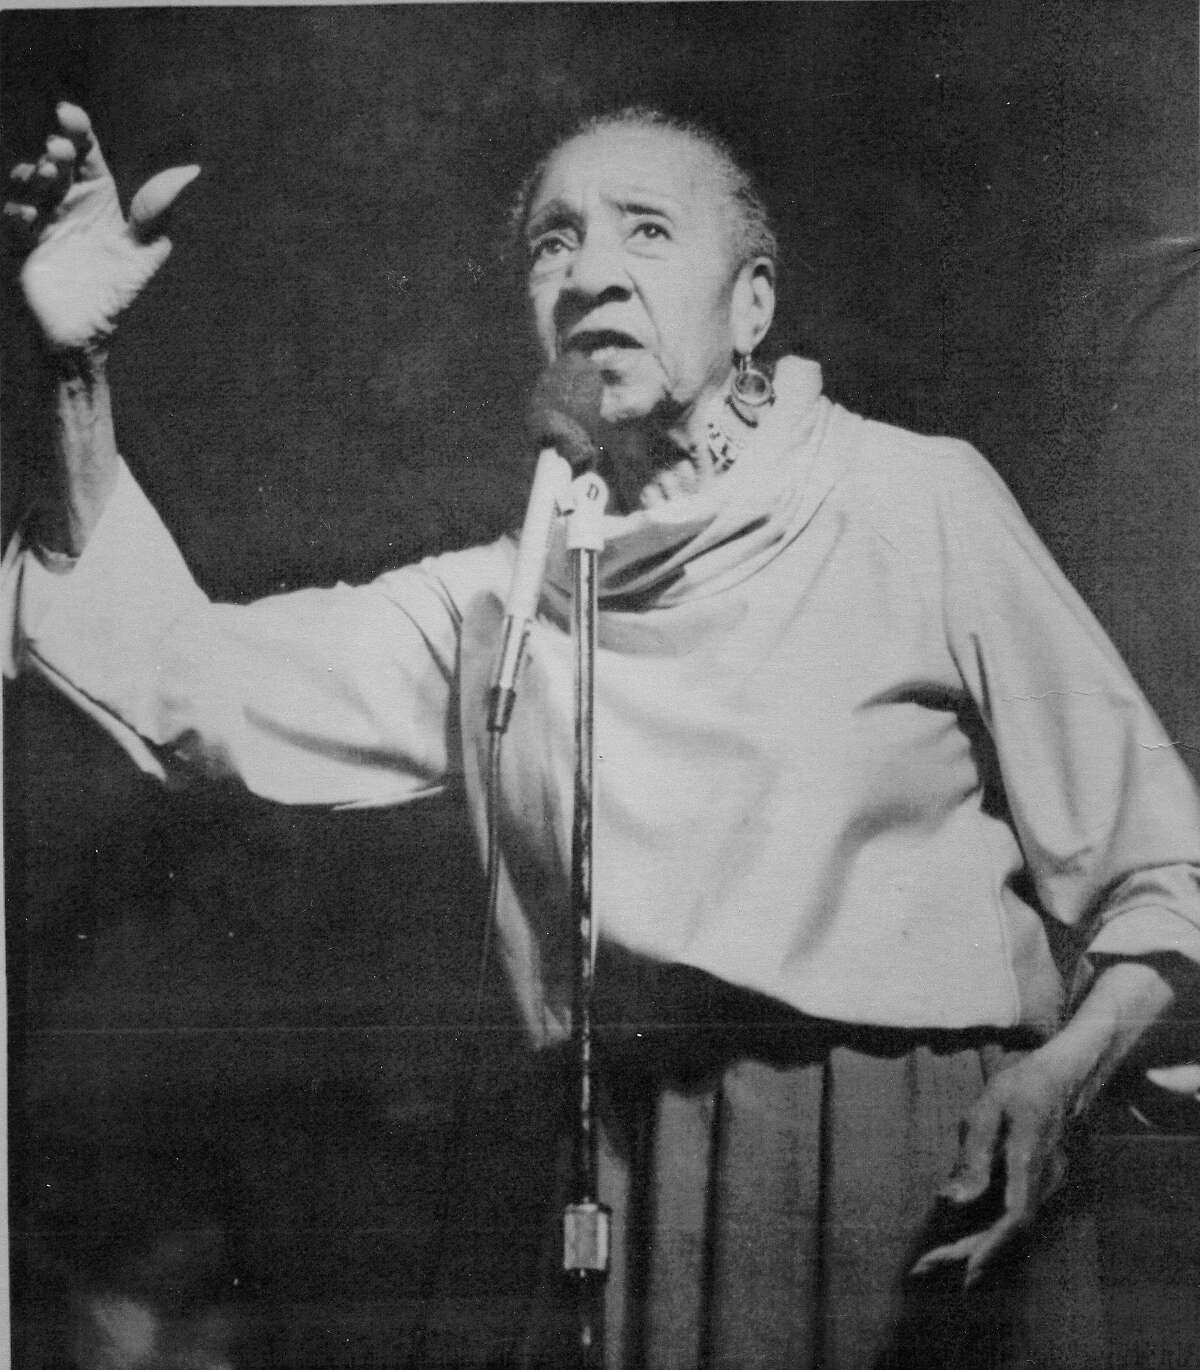 Blues singer Alberta Hunter whose voice delighted audiences for nearly 8 decades, shown here in 1978, performing at New York University's Loeb Center, presented as part of the Newport Jazz Festival.